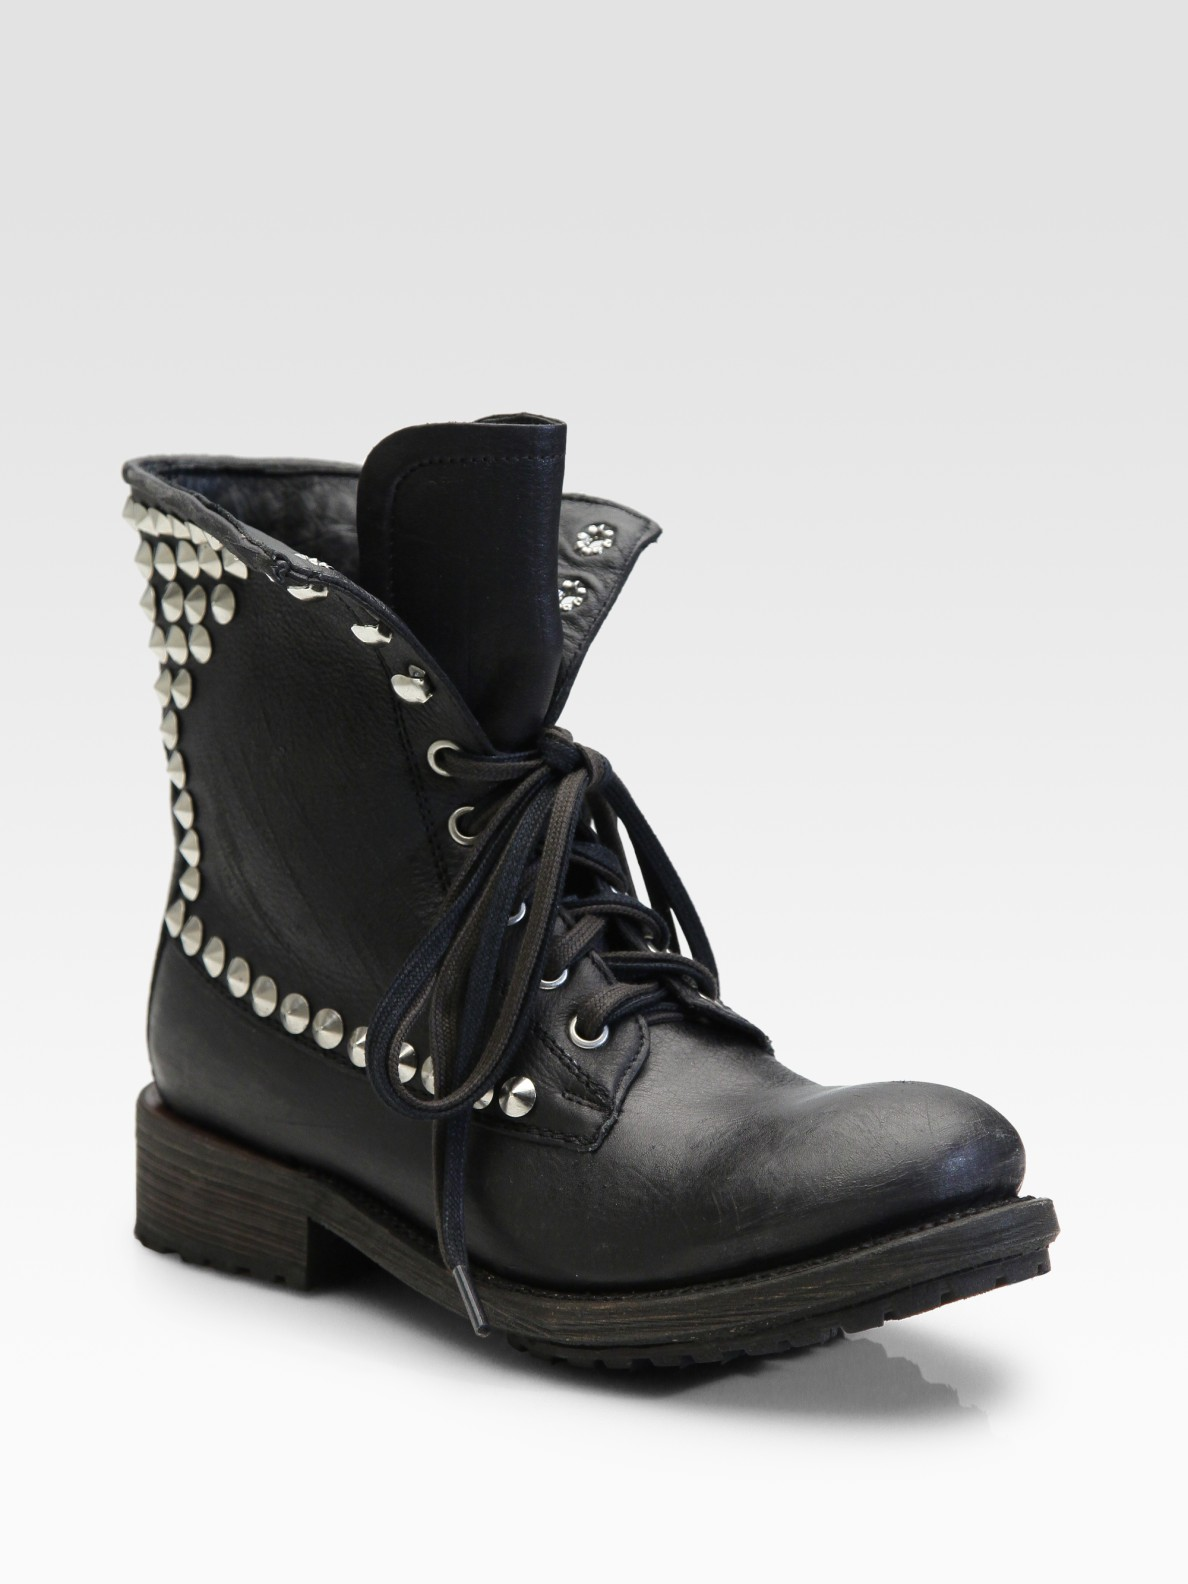 Ash Studded Lace-up Short Boots in Black | Lyst